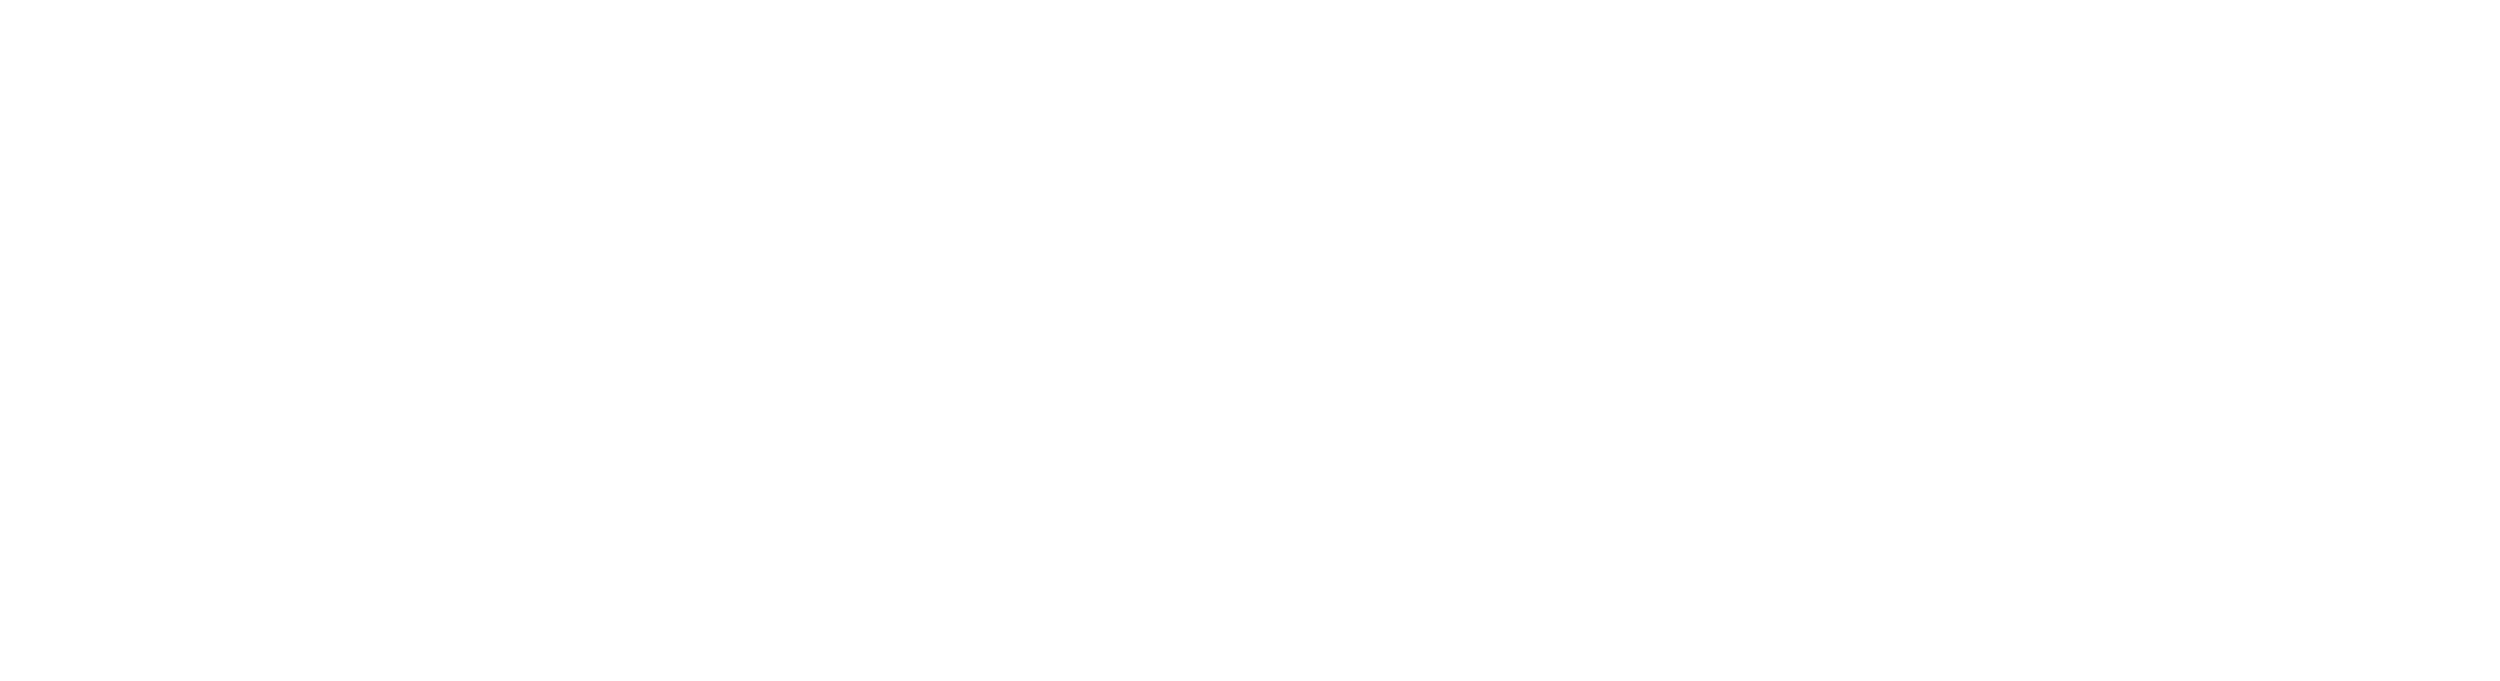 Logo_brush_01.png